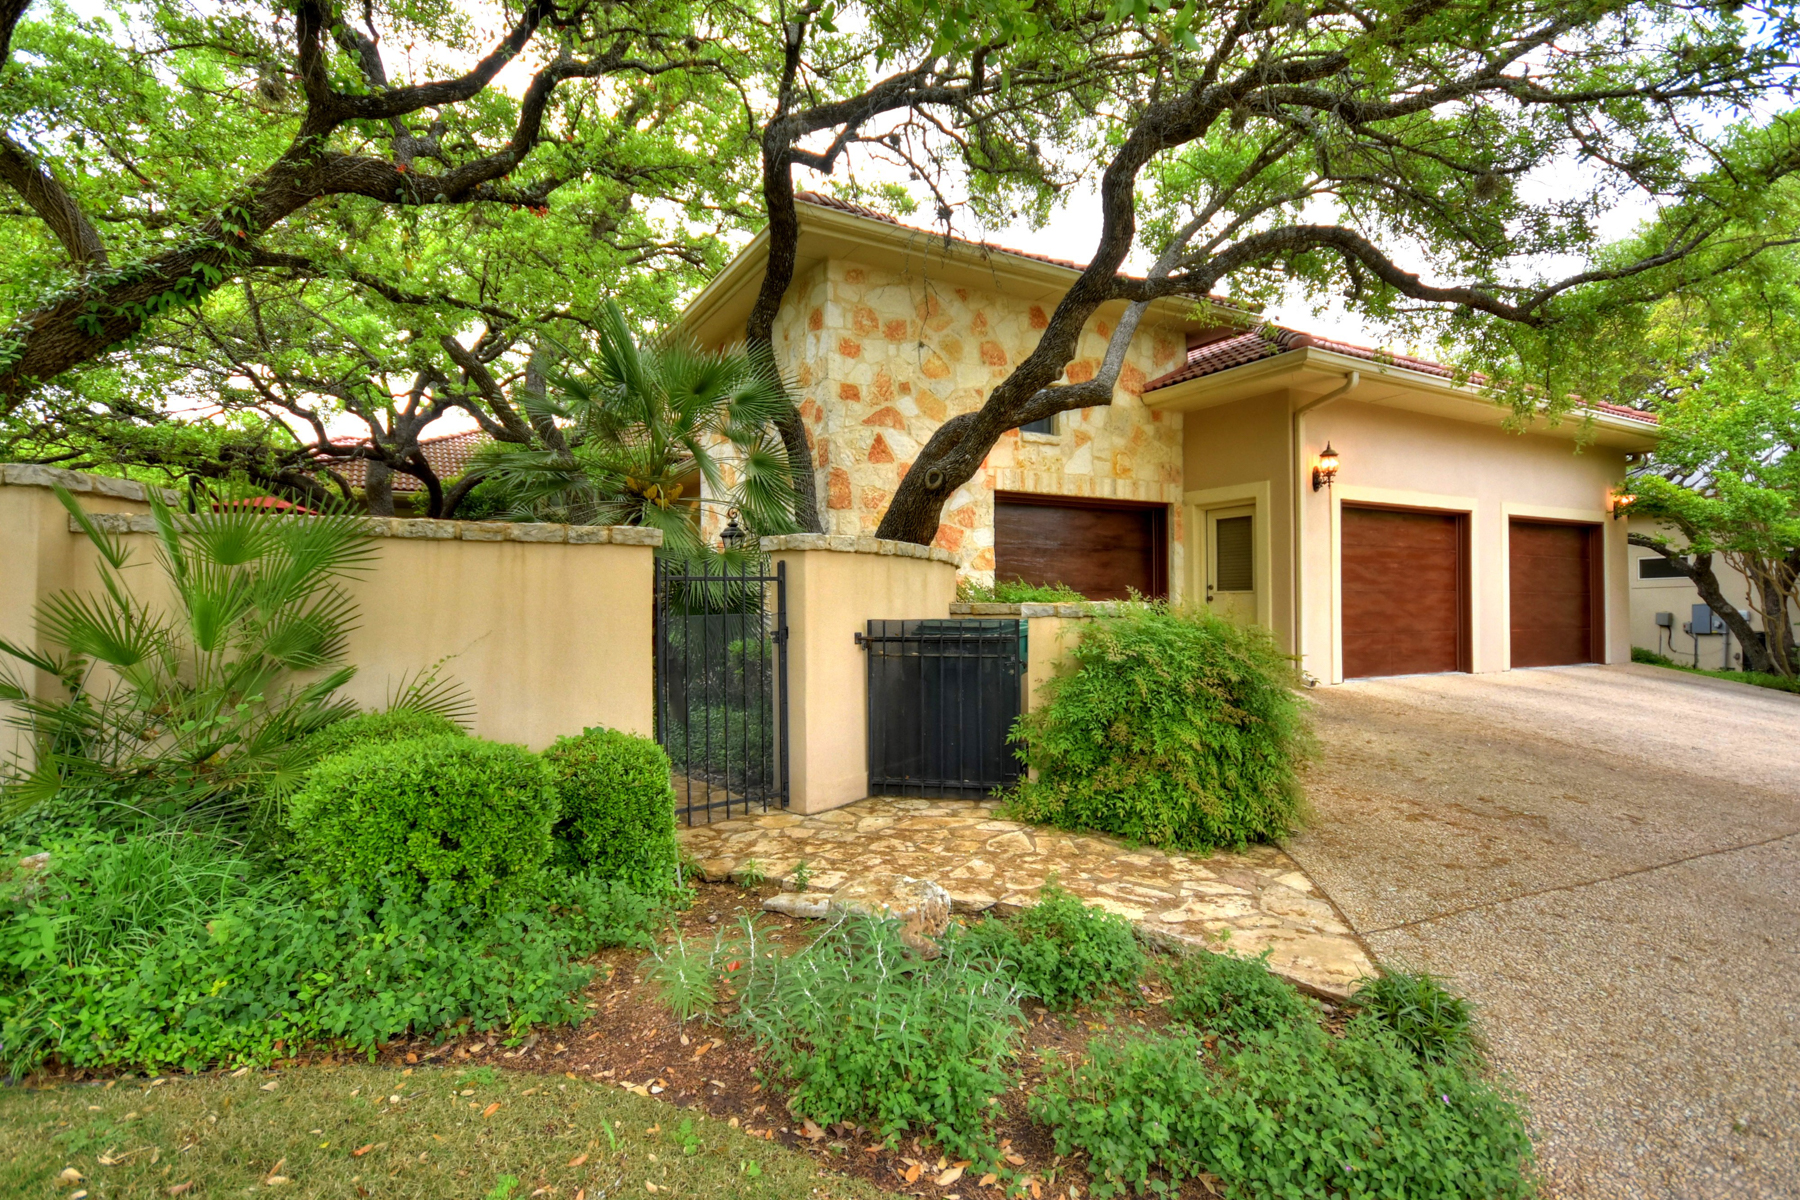 Additional photo for property listing at Immaculate Home in The Dominion 35 Worthsham San Antonio, Texas 78257 United States